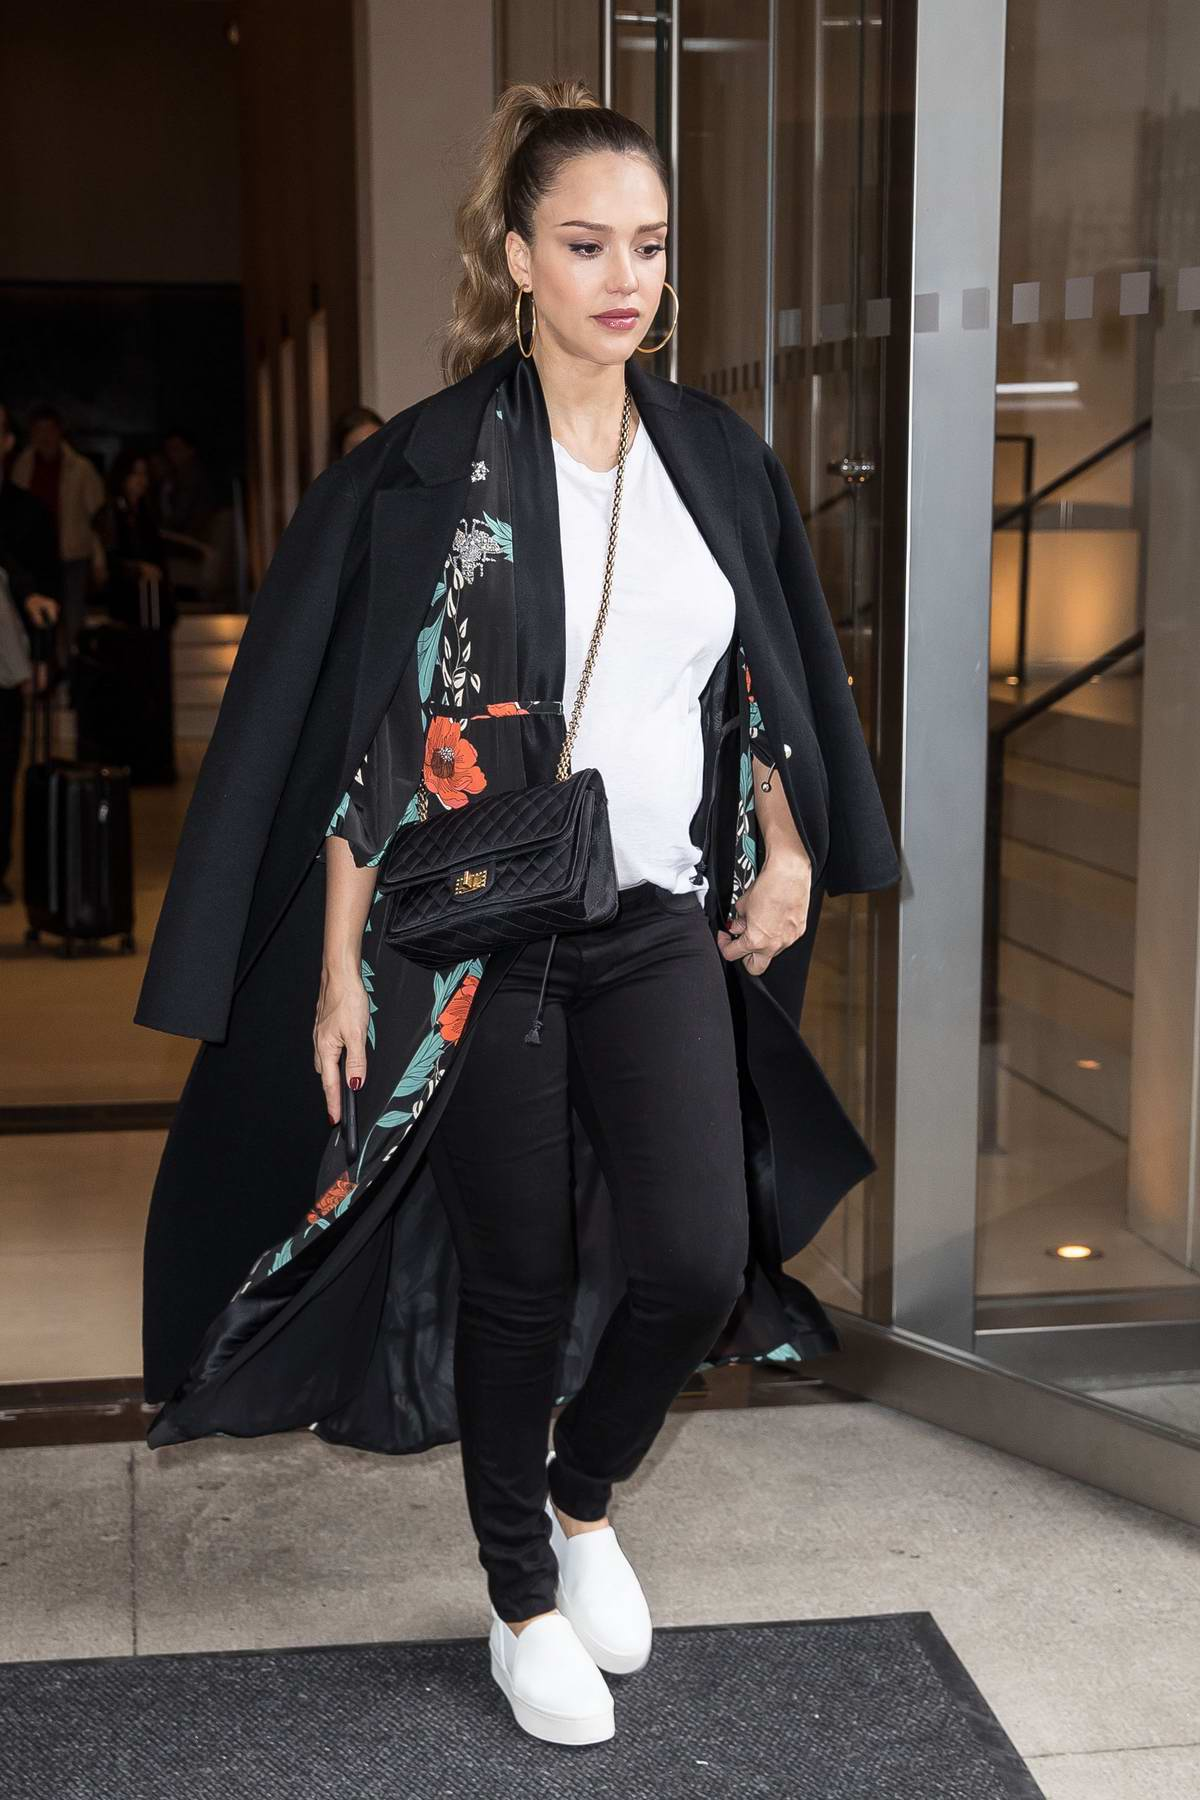 Jessica Alba steps out of her hotel in New York